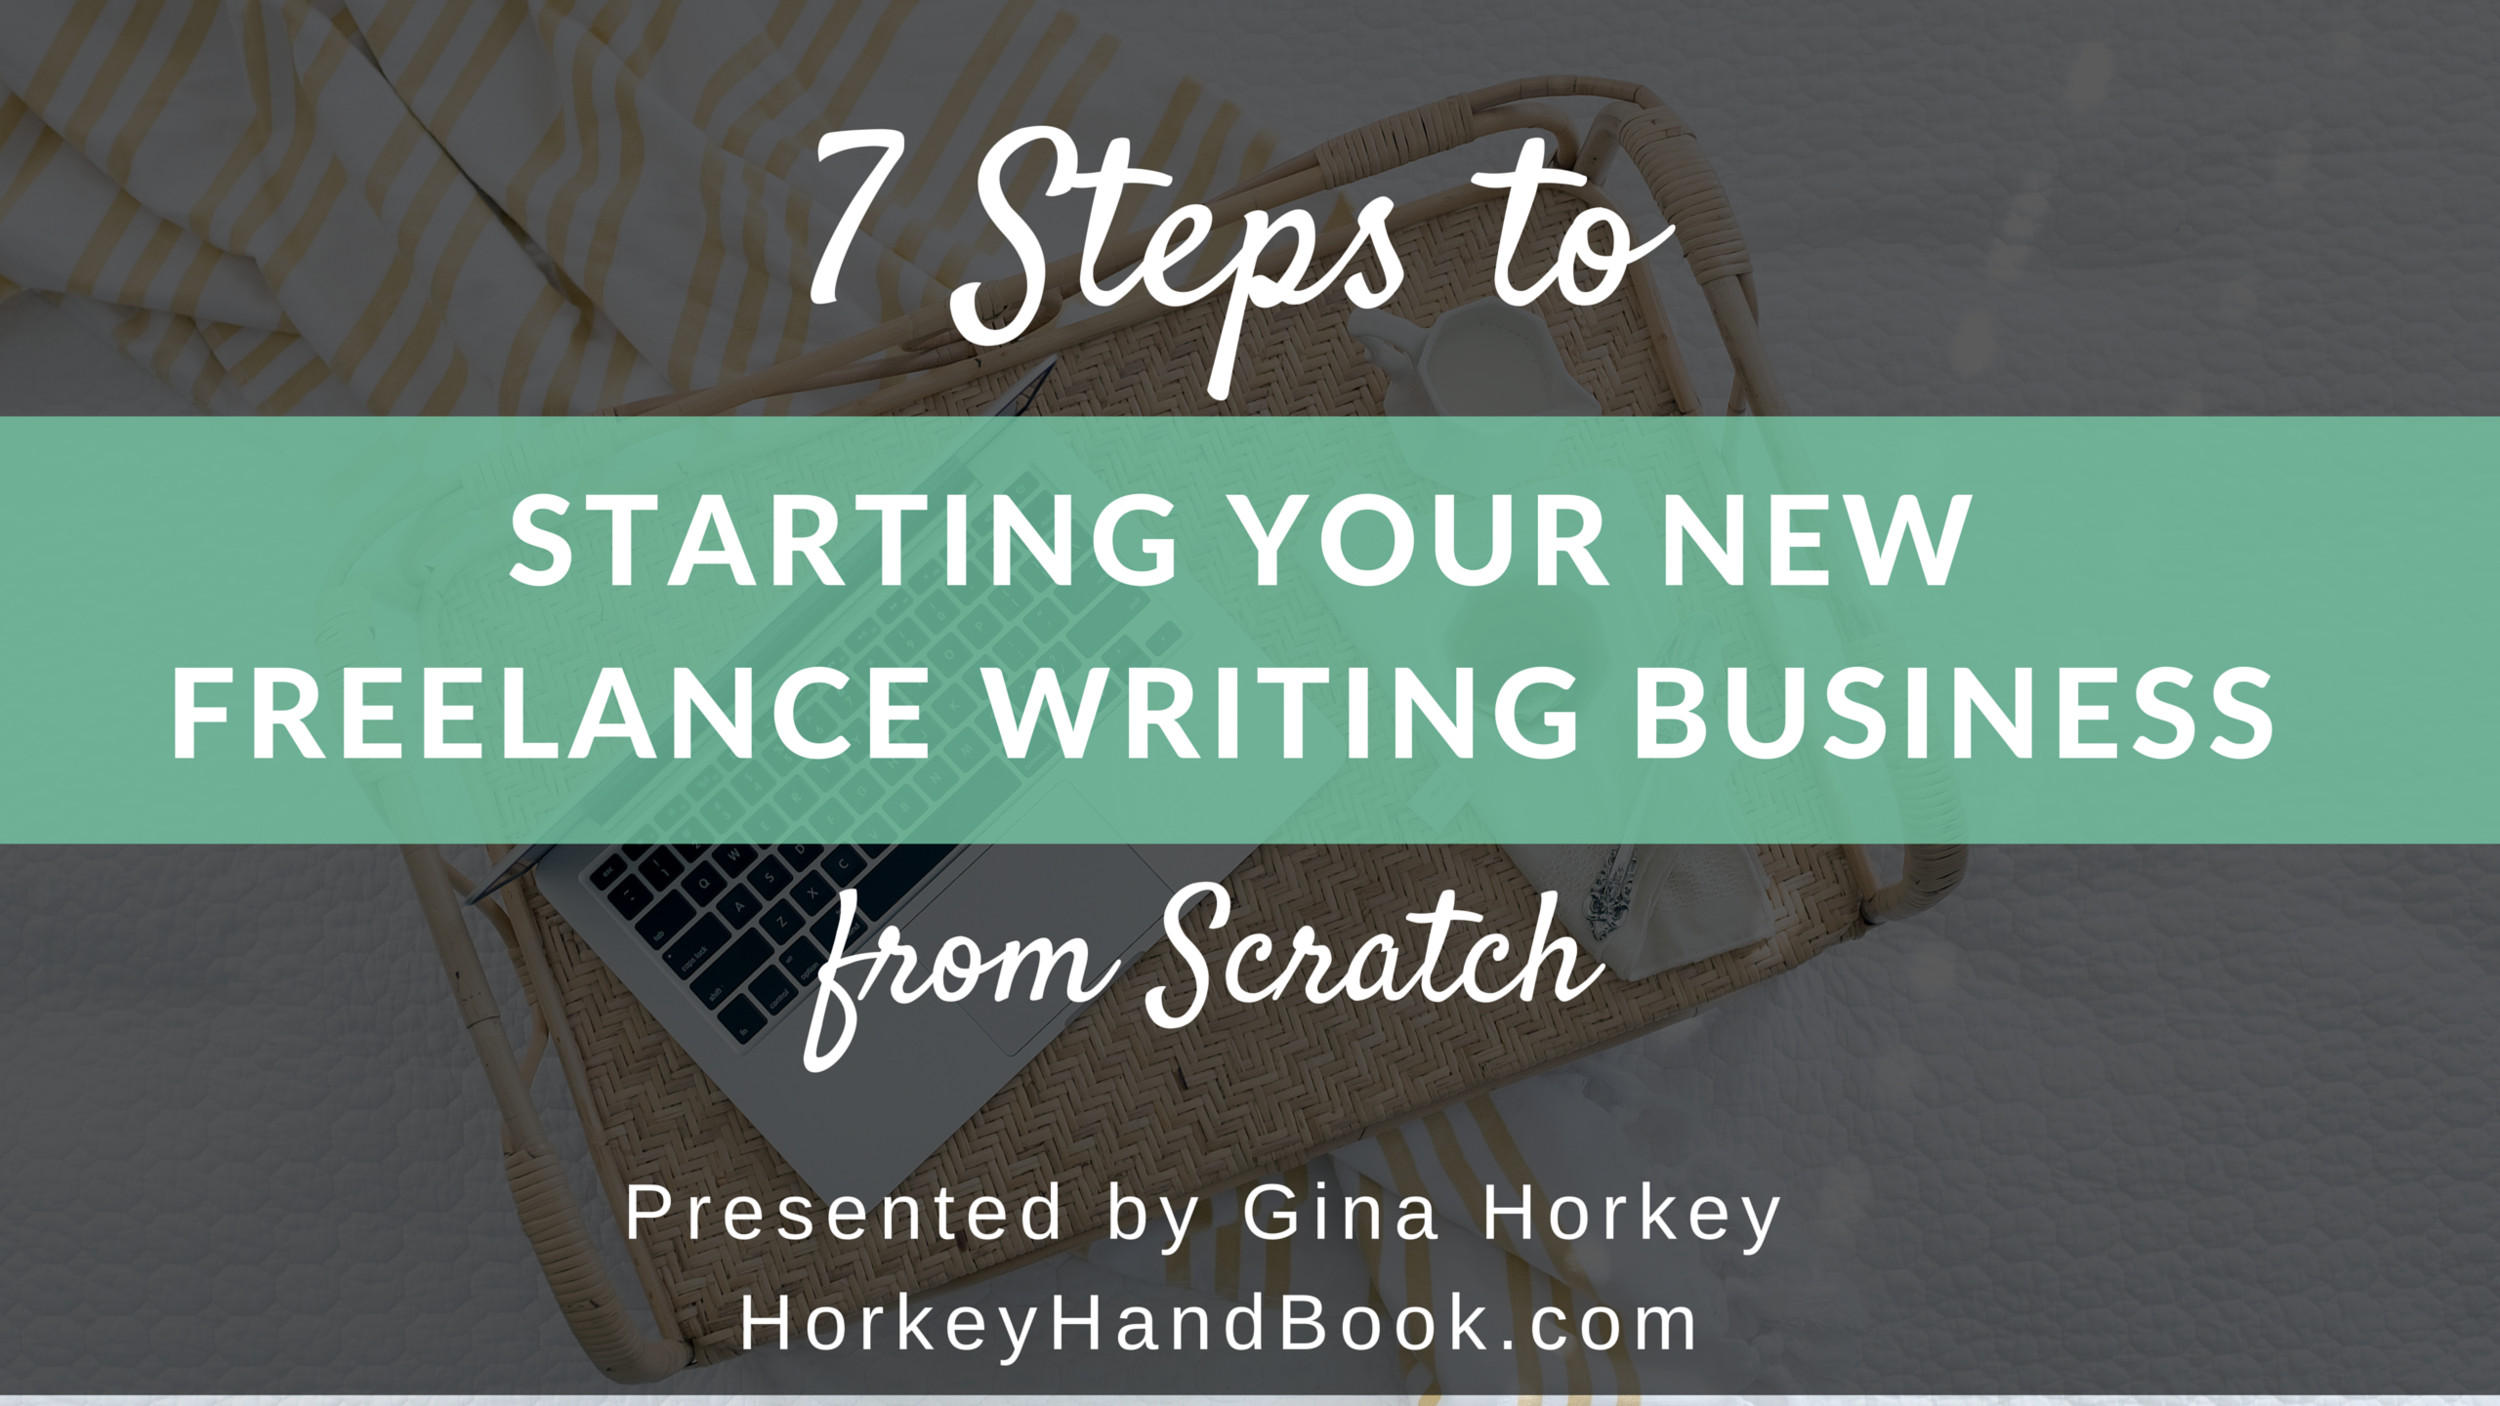 Join my friend, Gina Horkey and I next Friday (September 16) at 1pm CST to learn more about the world of freelance writing for the web. She's going to teach us the seven steps we need to take to start a new freelance writing business from scratch in less than an hour. (Have you seen her 5 FIGURE/MONTH INCOME REPORTS on Horkey Handbook?! She knows what she's doing, friends!)